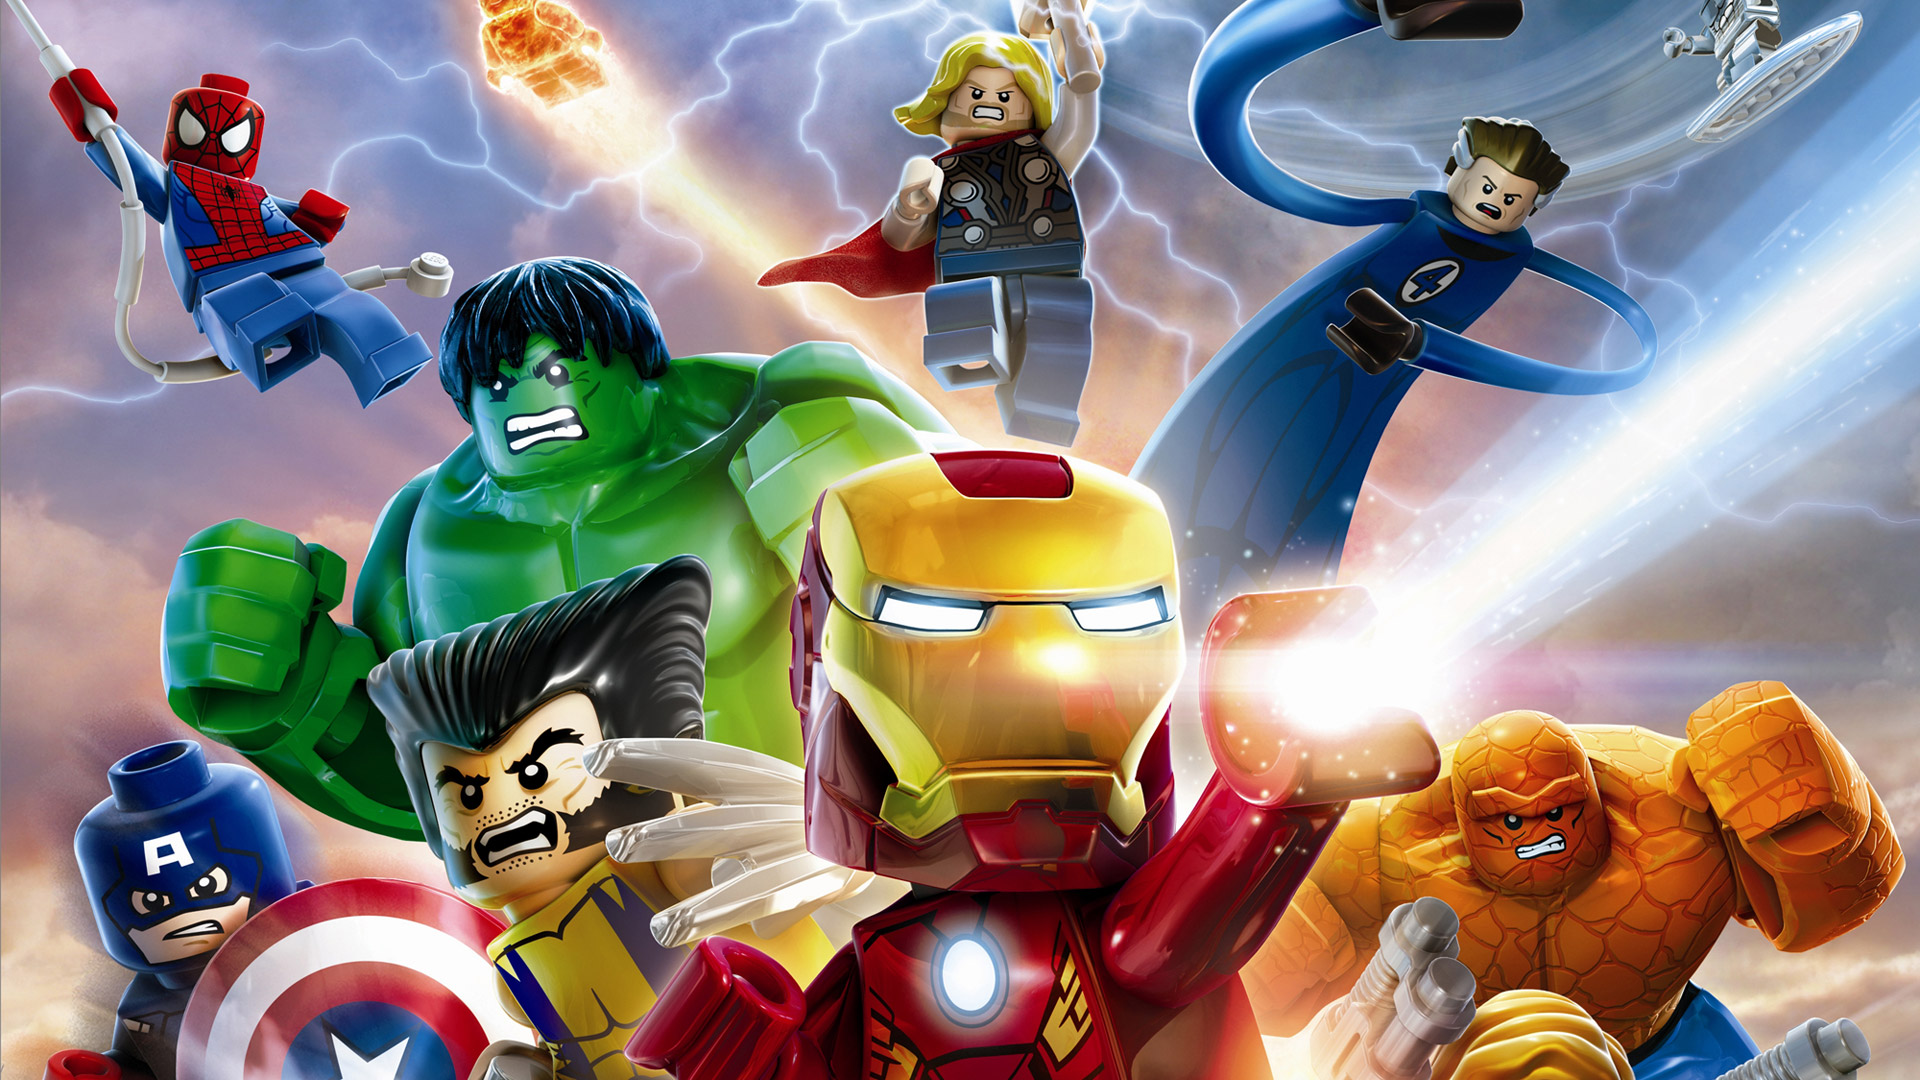 Lego Marvel Super Heroes Wallpaper in 1920x1080